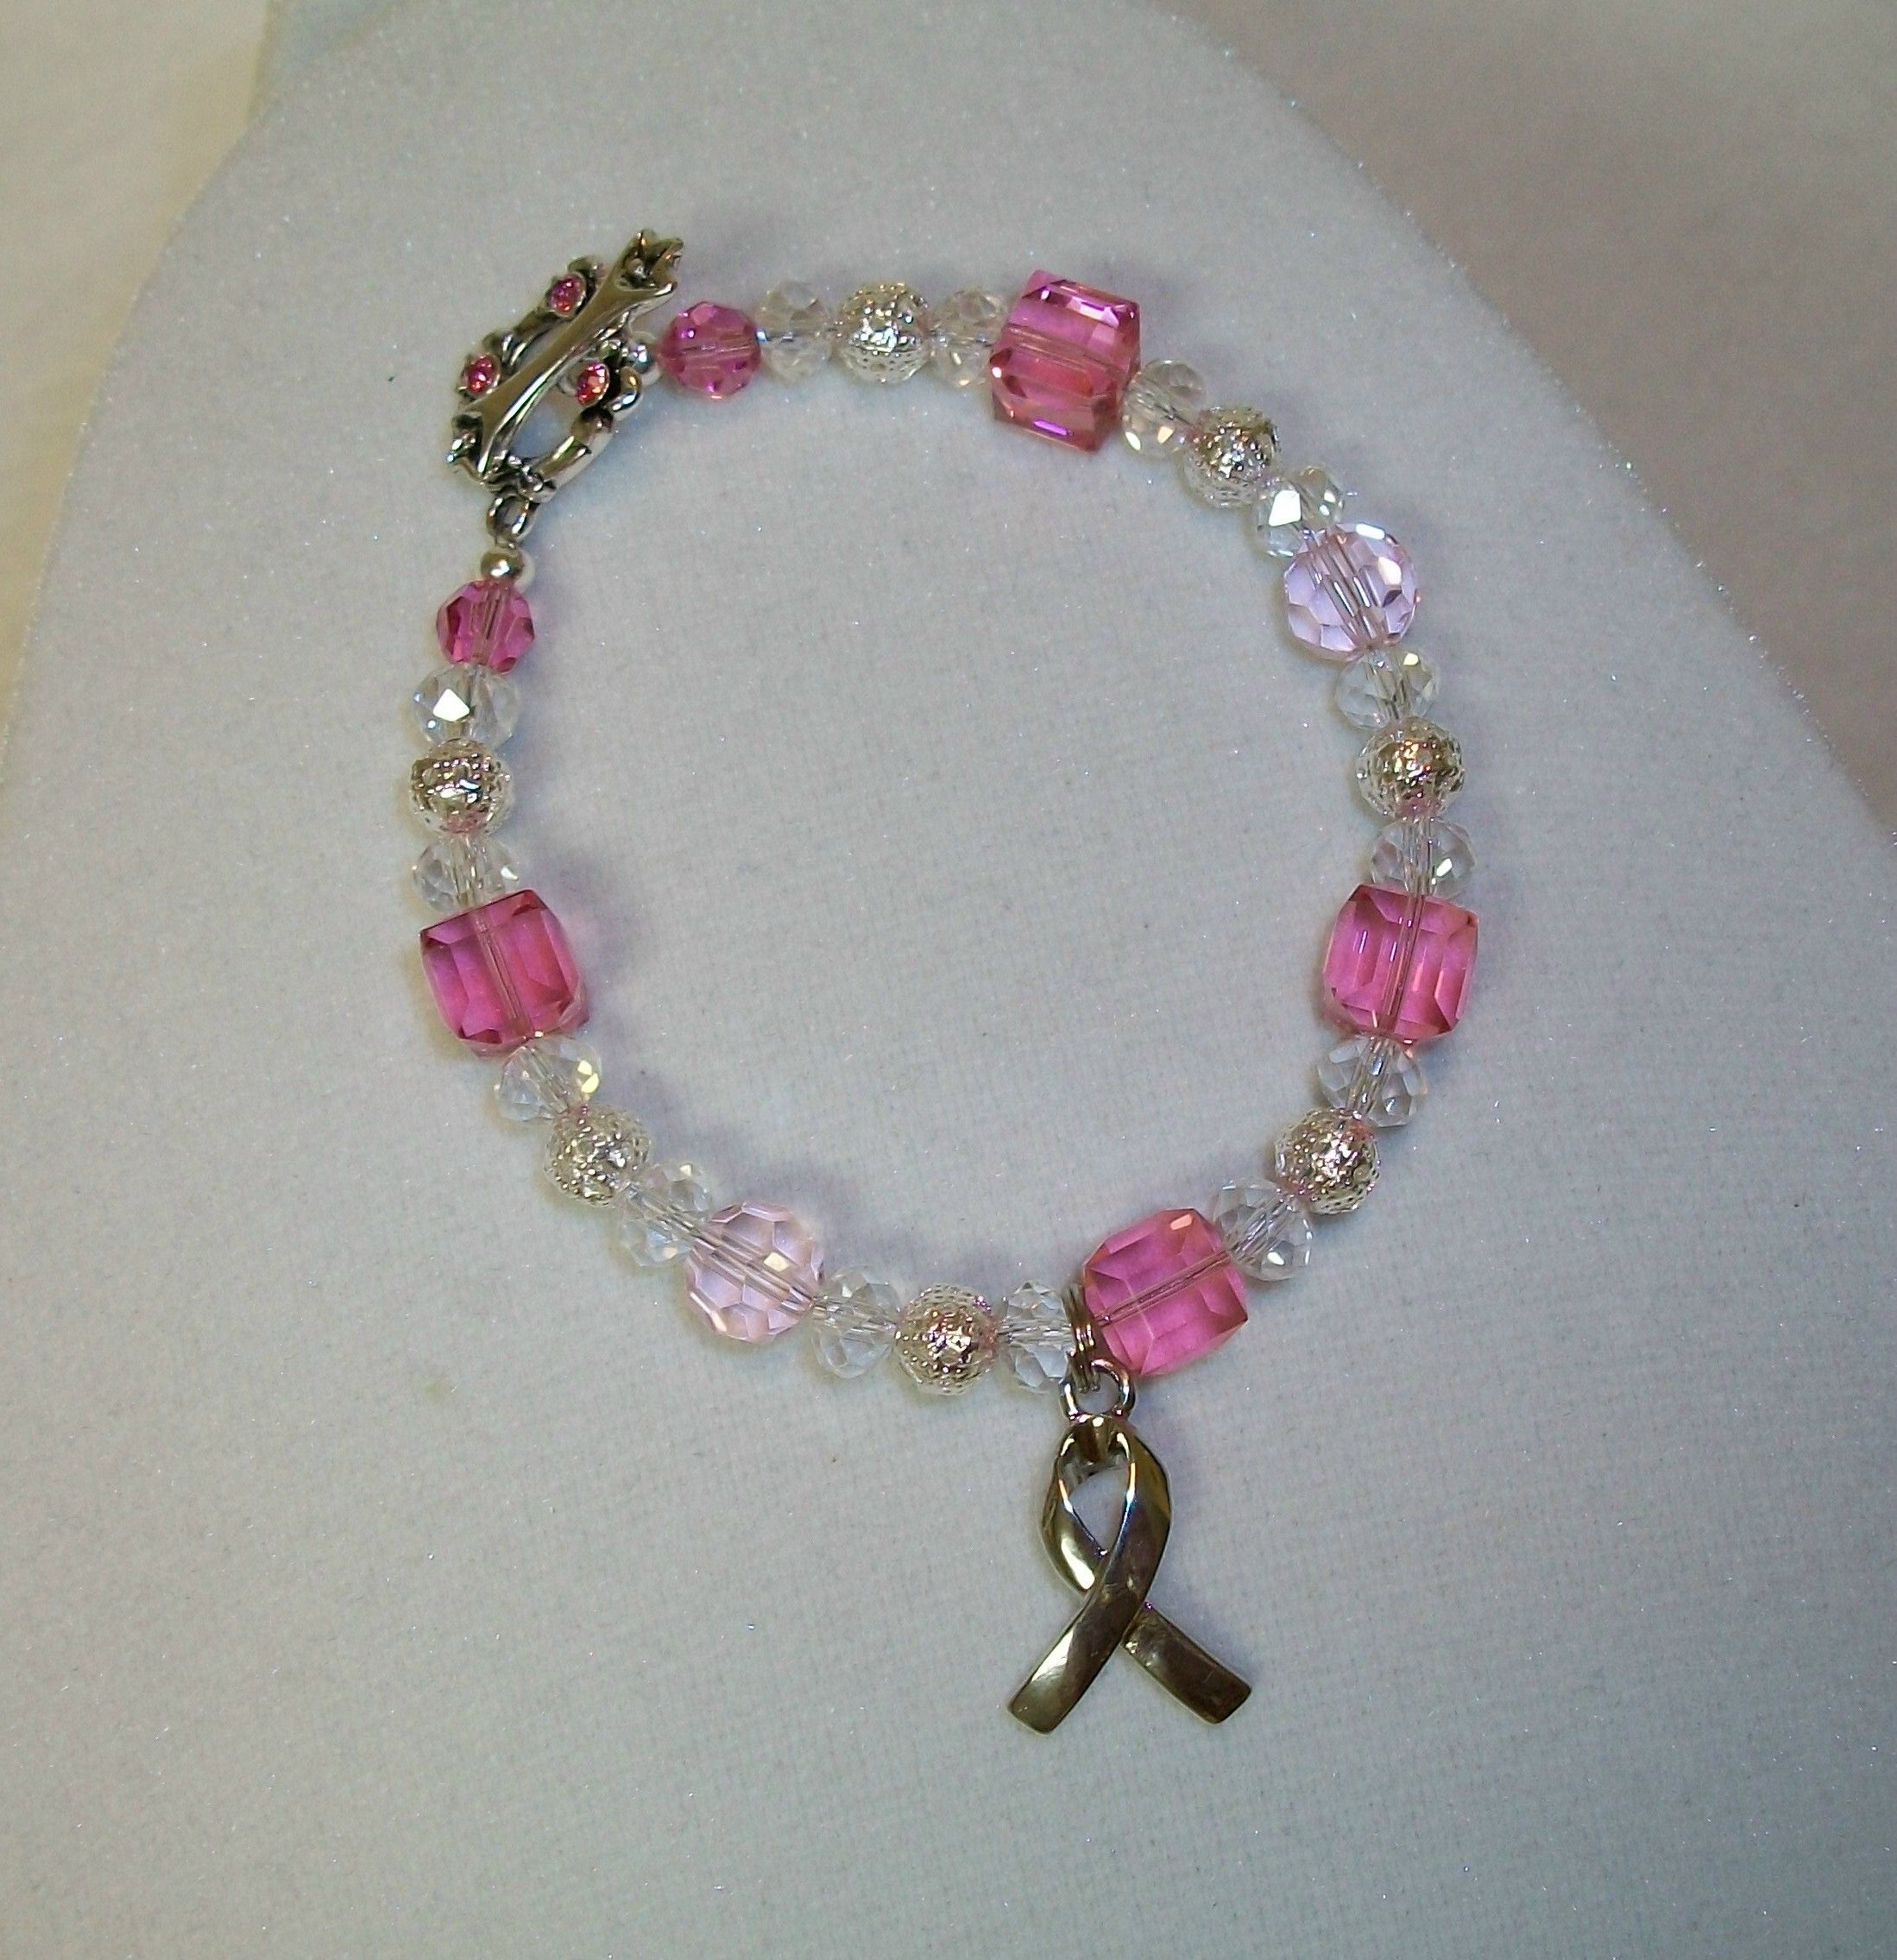 cancer awareness tiny necklace fullxfull silver il lfqw listing nz ribbon support zoom bracelet sterling